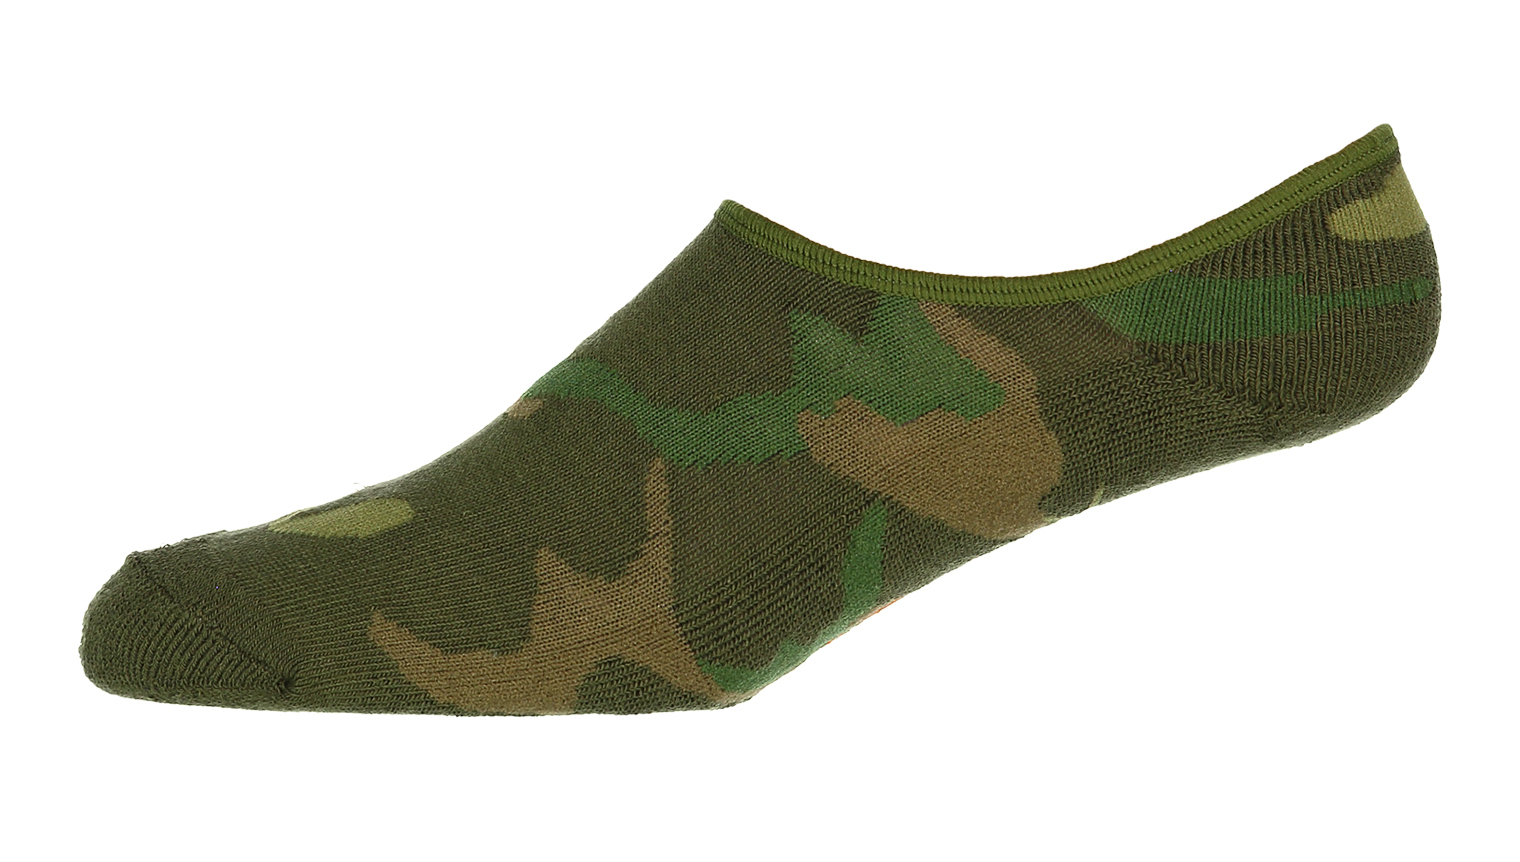 KUSTOM CLOTHING & ACCESSORIES M INVISIBLE CAMO SOCKS